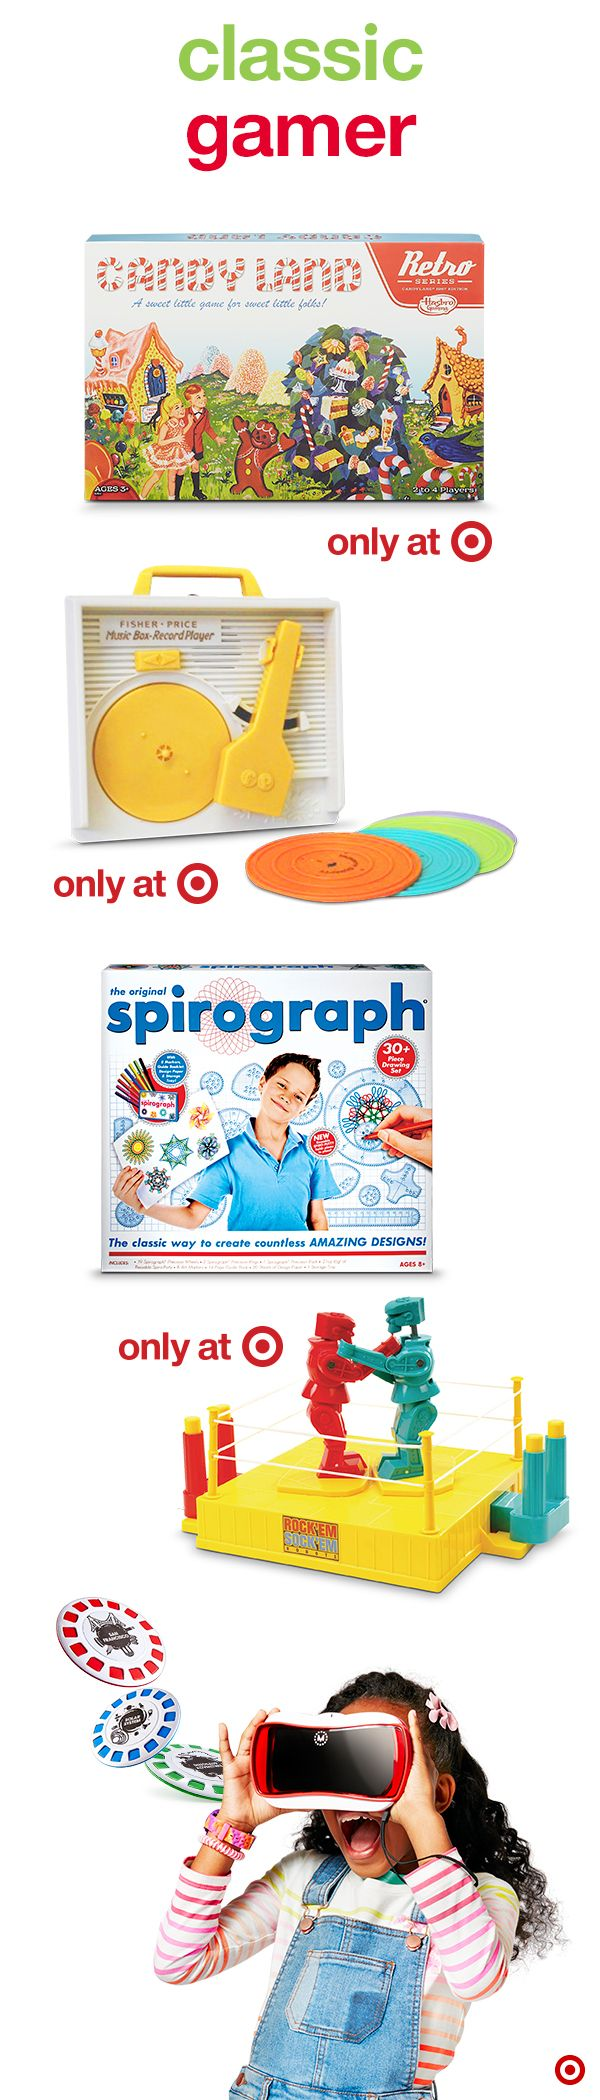 Remember those awesome toys from your past? Share that same joy and sense of wonder with cool-again retro toys. Check out The Original Spirograph, ViewMaster and Fisher-Price Music Box Record Player. And, who can forget the fun games that don't need batteries or an outlet! Let the fun begin!